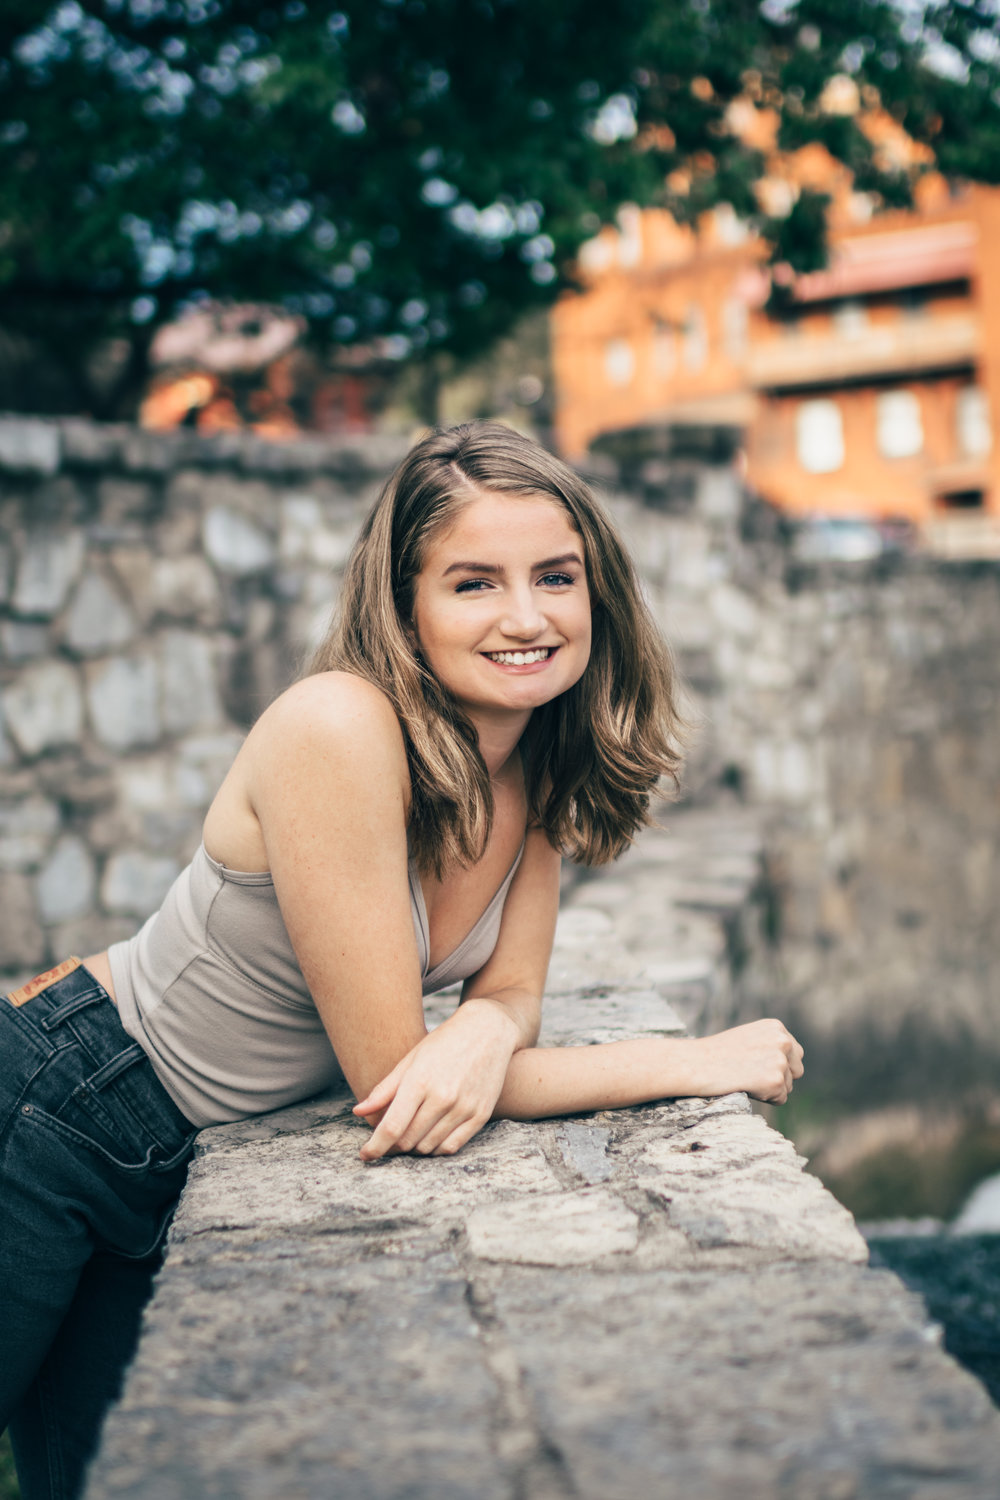 Smiling girl leaning on stone